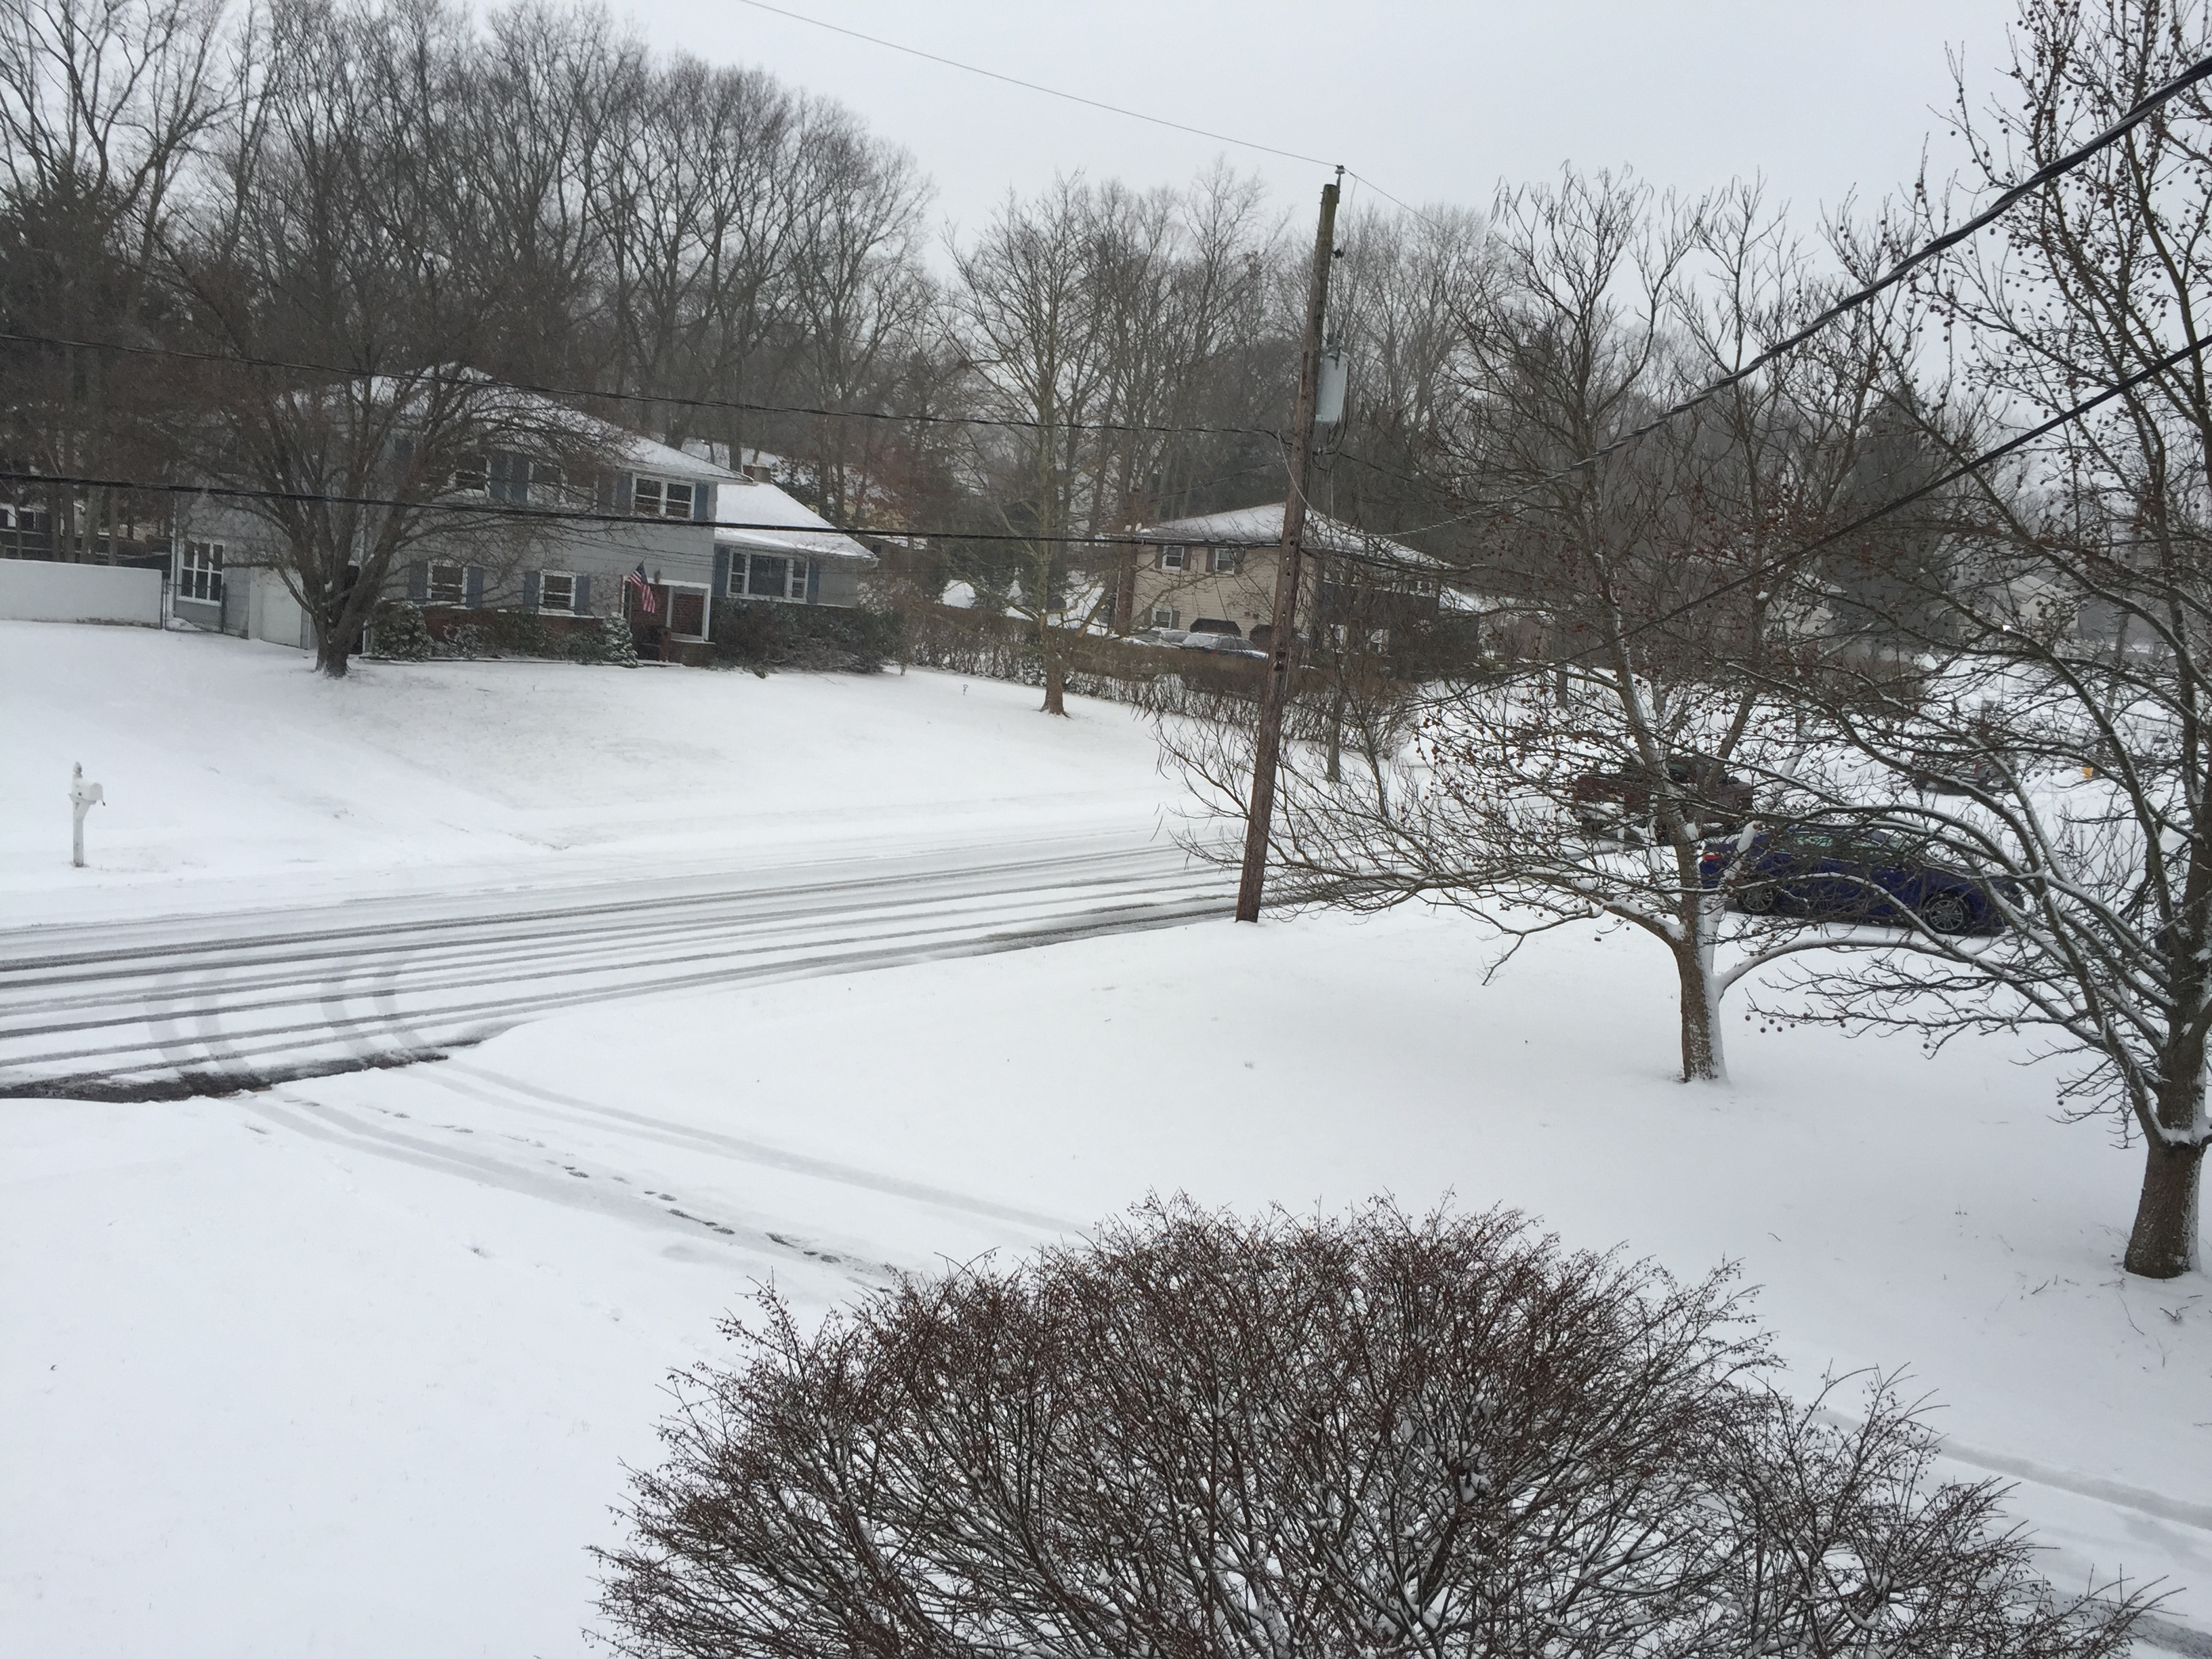 Snow covering a Brick Township street just after 4 p.m. Monday, Jan. 26, 2015. (Photo: Daniel Nee)